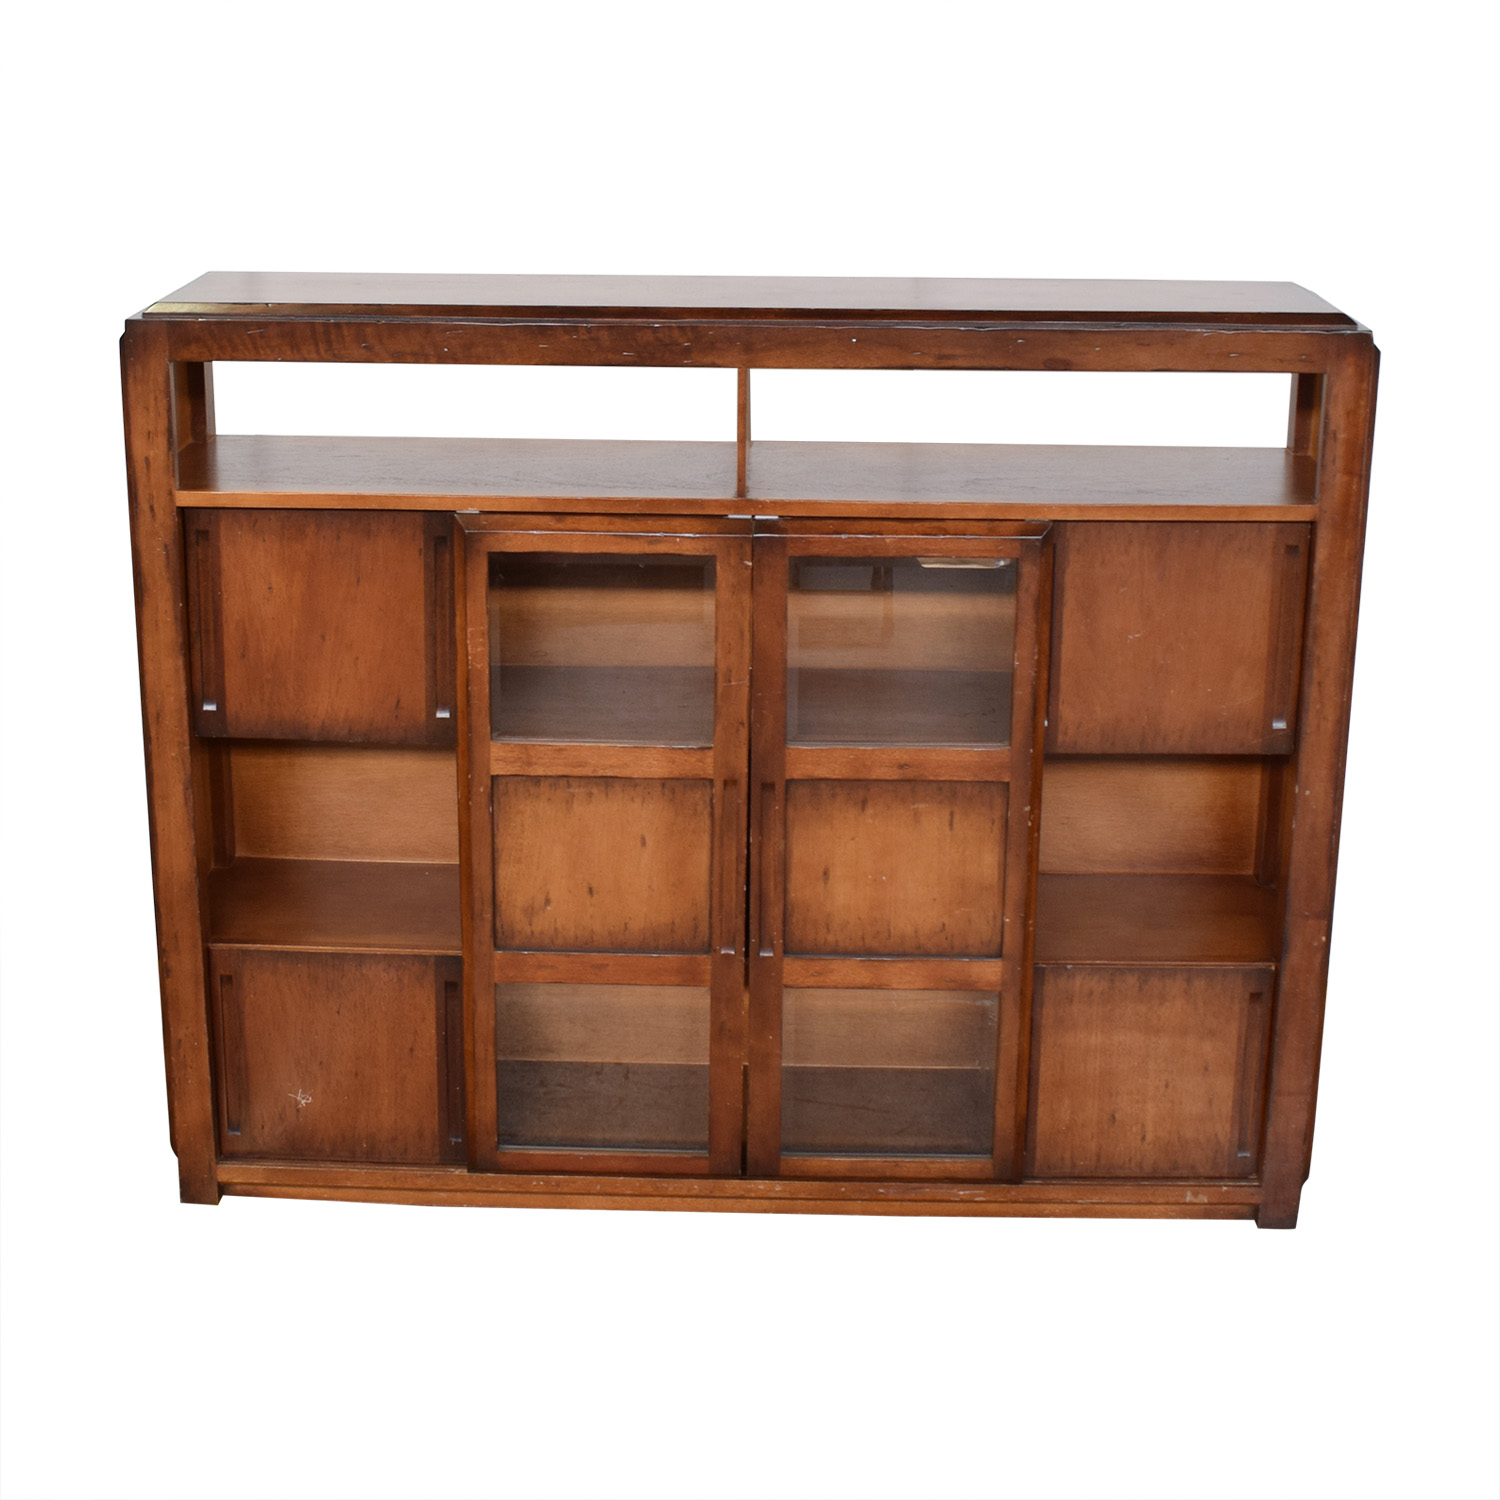 buy South Cone Furniture Modular Bookcase South Cone Furniture Bookcases & Shelving